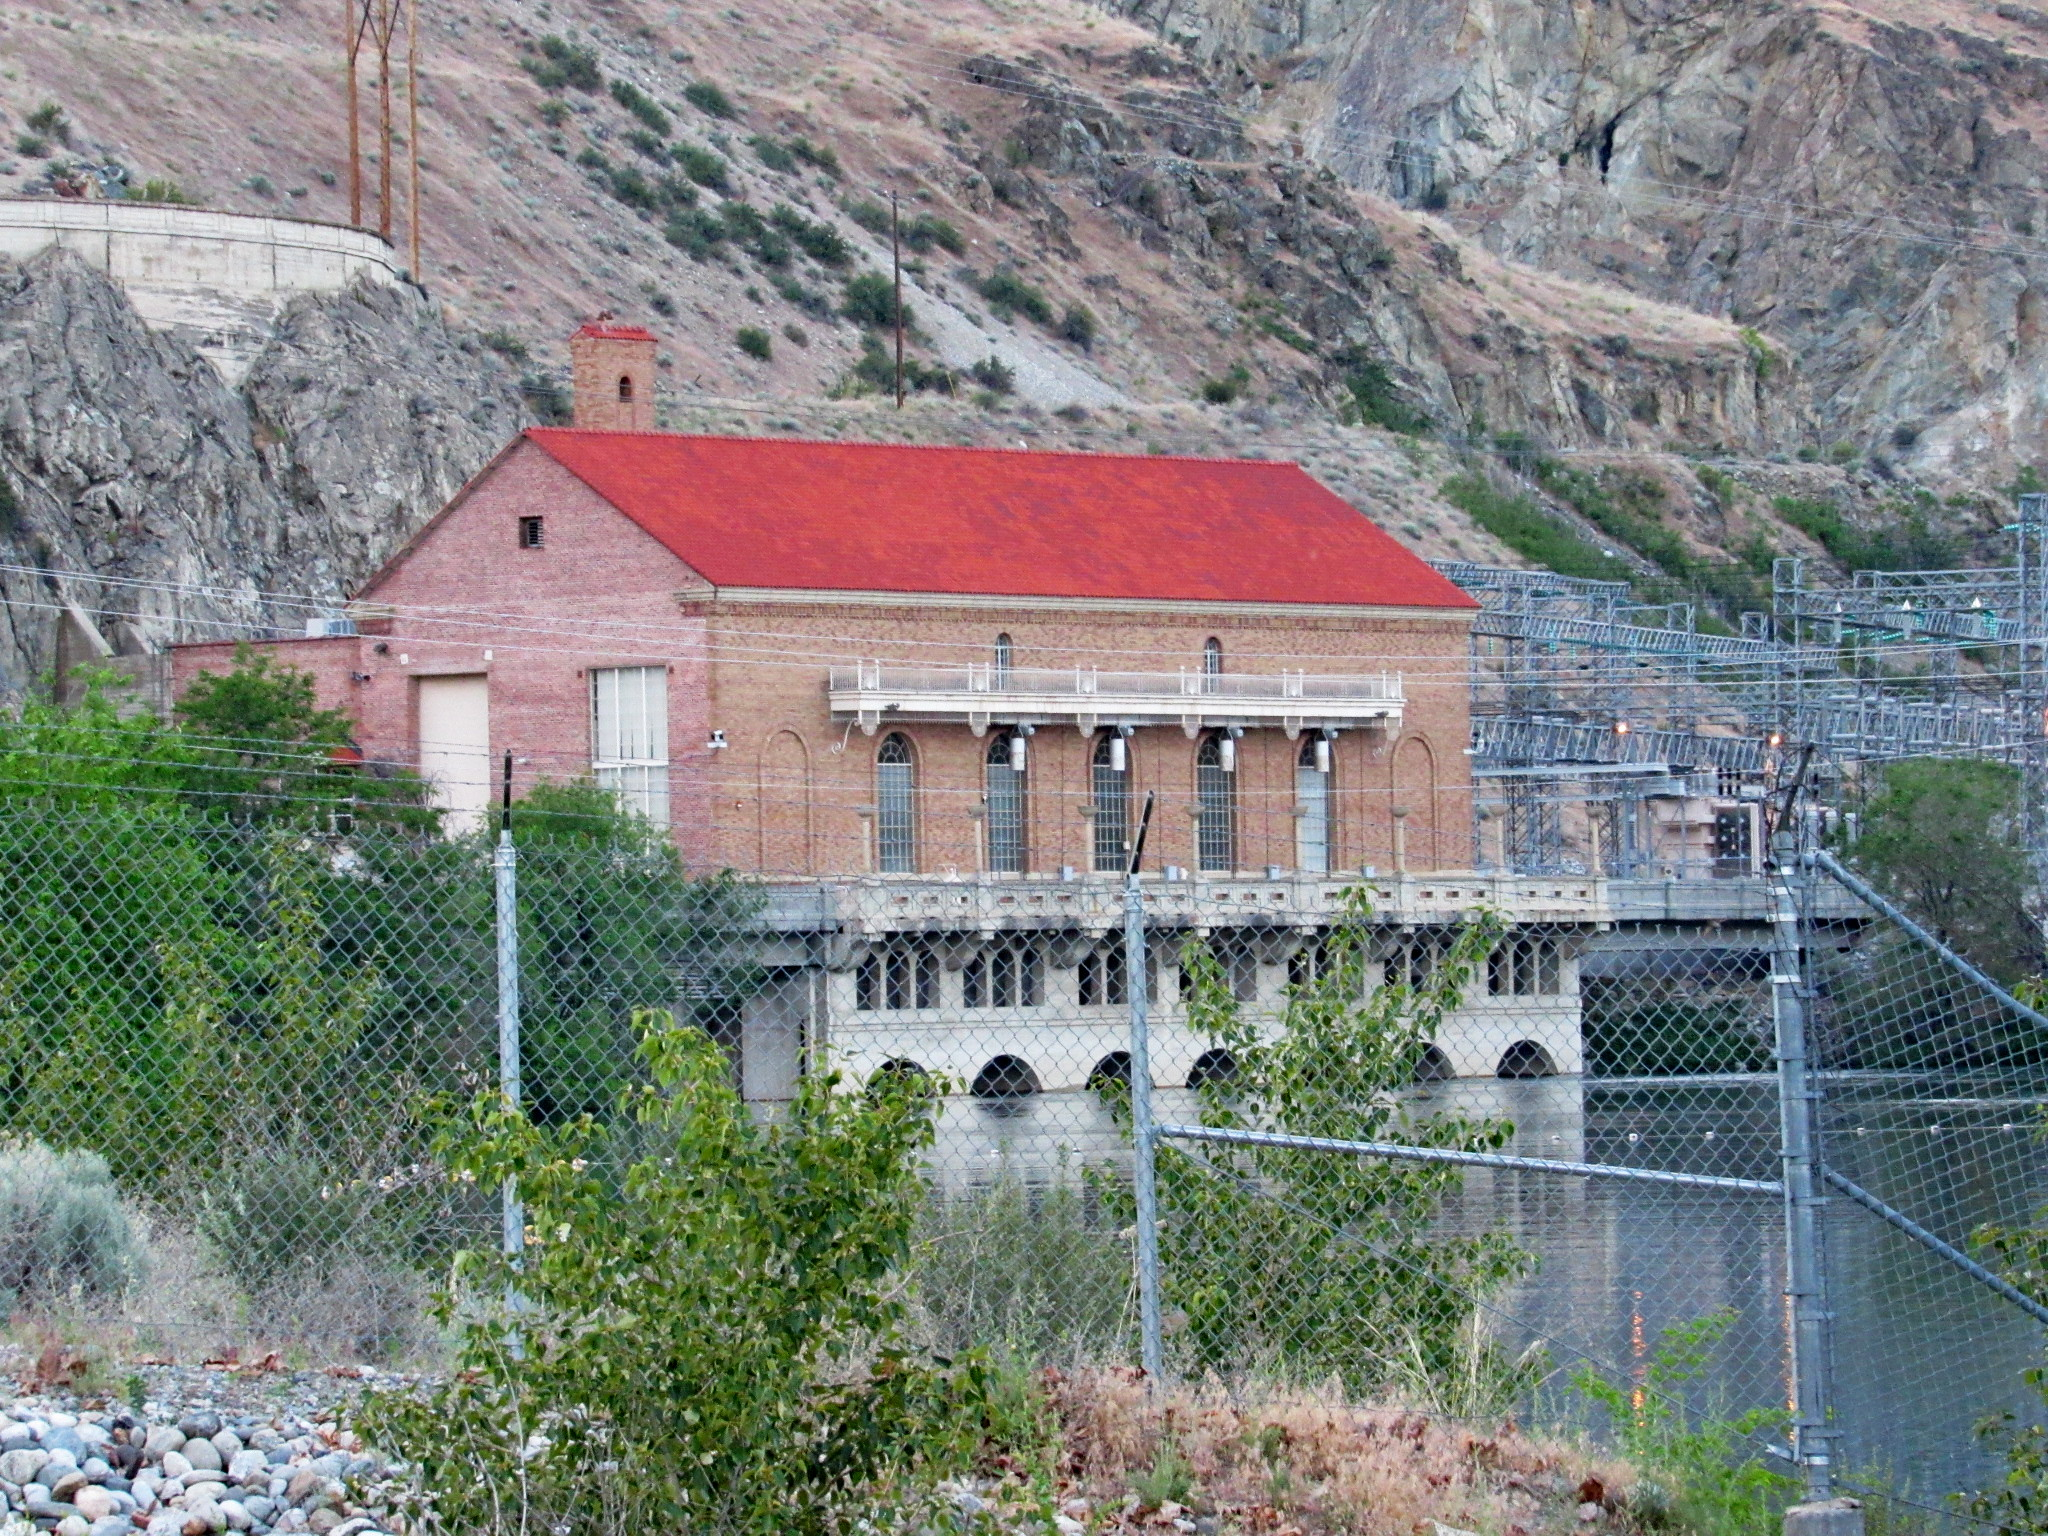 The powerhouse is located in Chelan Falls.